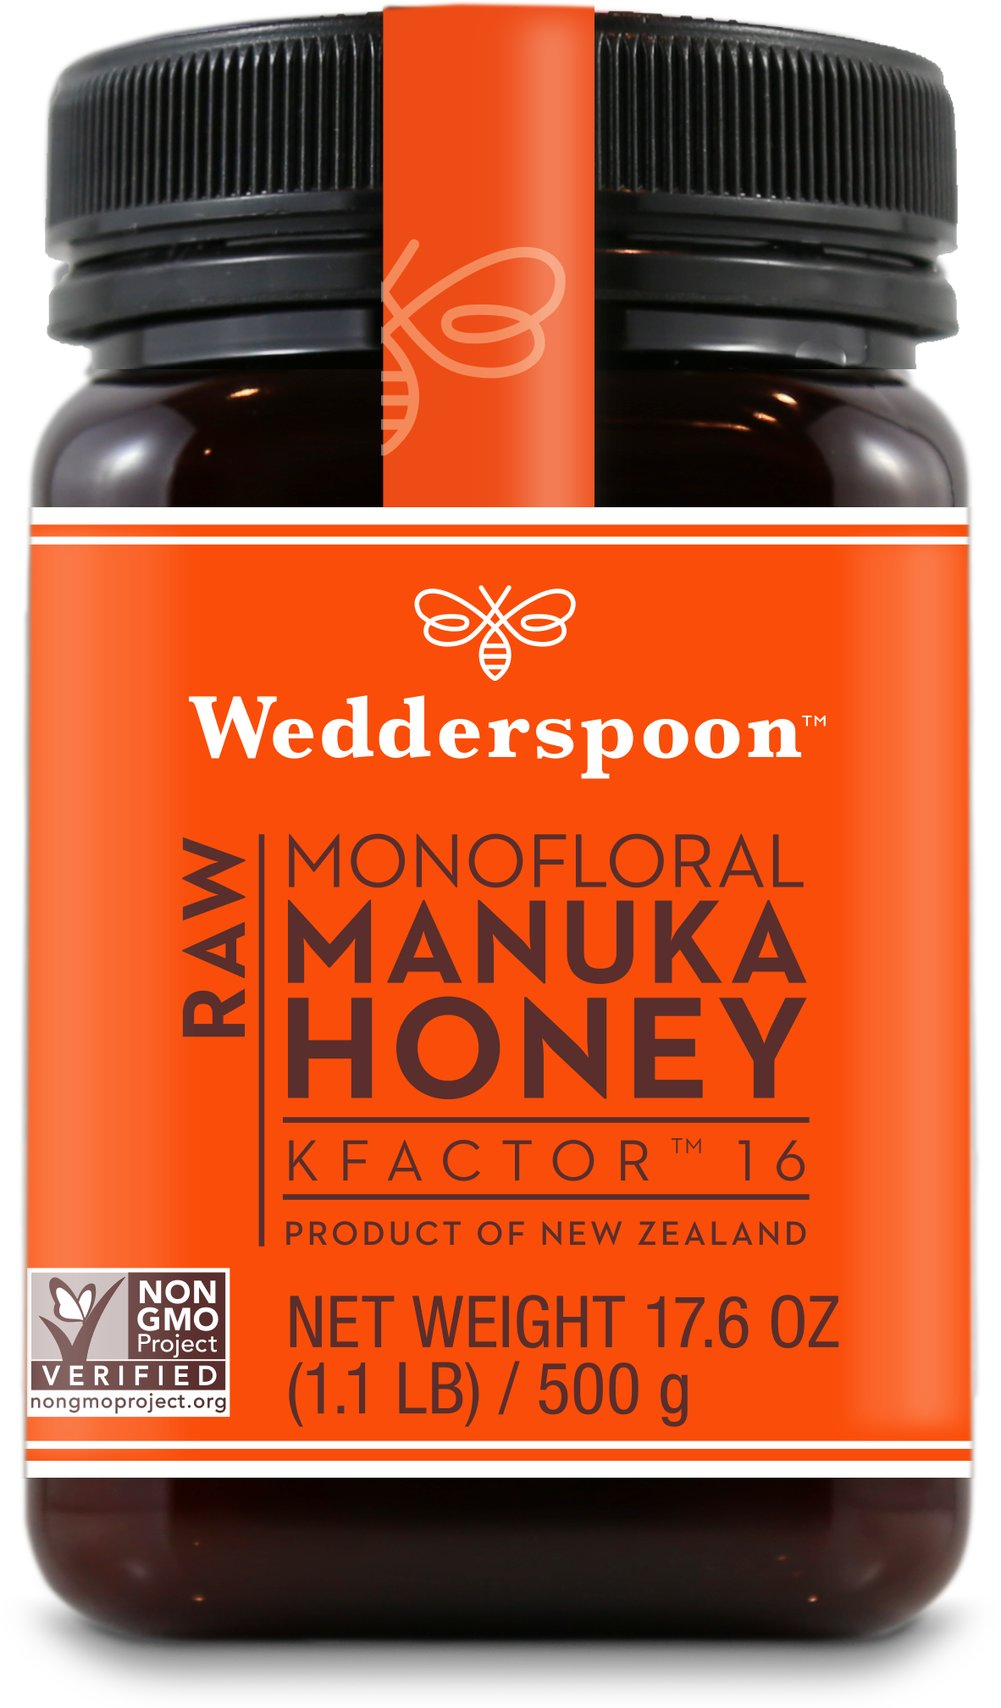 100% Raw Premium Manuka Honey Active 16+ Wedderspoon Raw Manuka Honey comes from a place where beekeepers actually talk to their bees. This delectable honey is sourced from the remote pristine areas of New Zealand's South island.<p></p>The outstanding quality and consistency is guaranteed because Wedderspoon tests each batch of Manuka Honey for its pollen count, live enzymes, antioxidants and phytochemical components.   17.6 oz Jar  $39.99